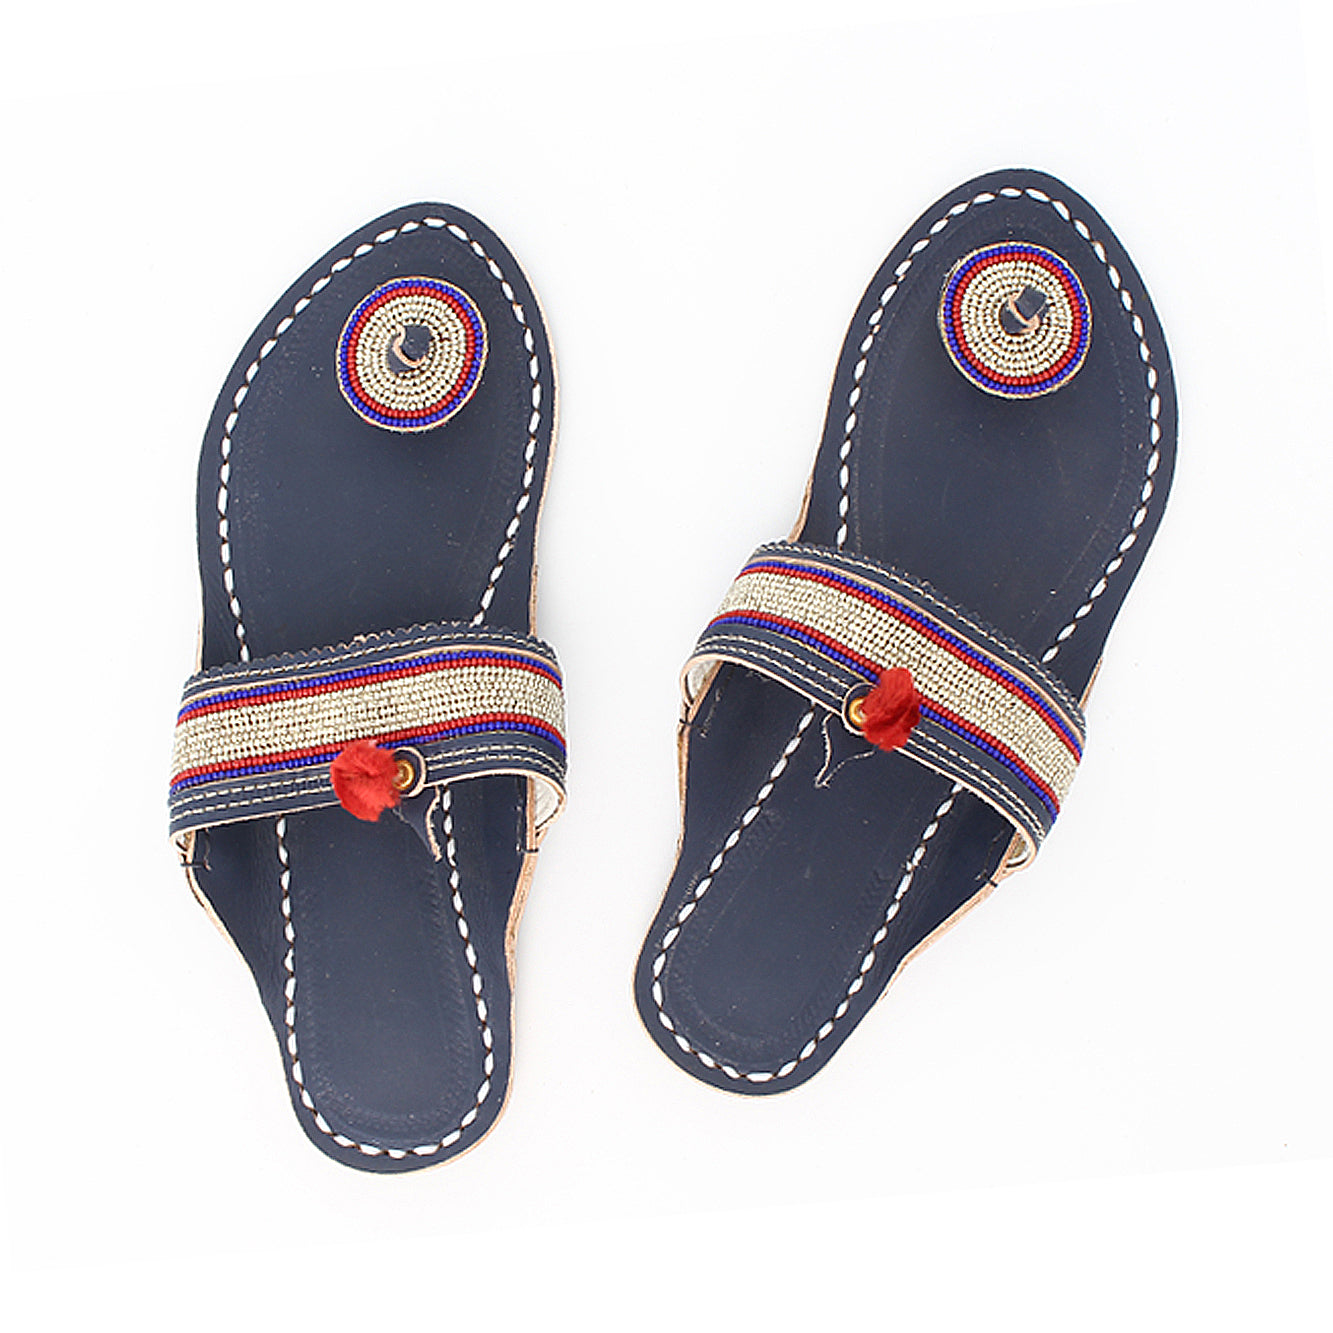 Premium Quality Stunning  Look Dark Blue Base and Silver Beads Leather Flip Flop for Women KRKA-P-W-220